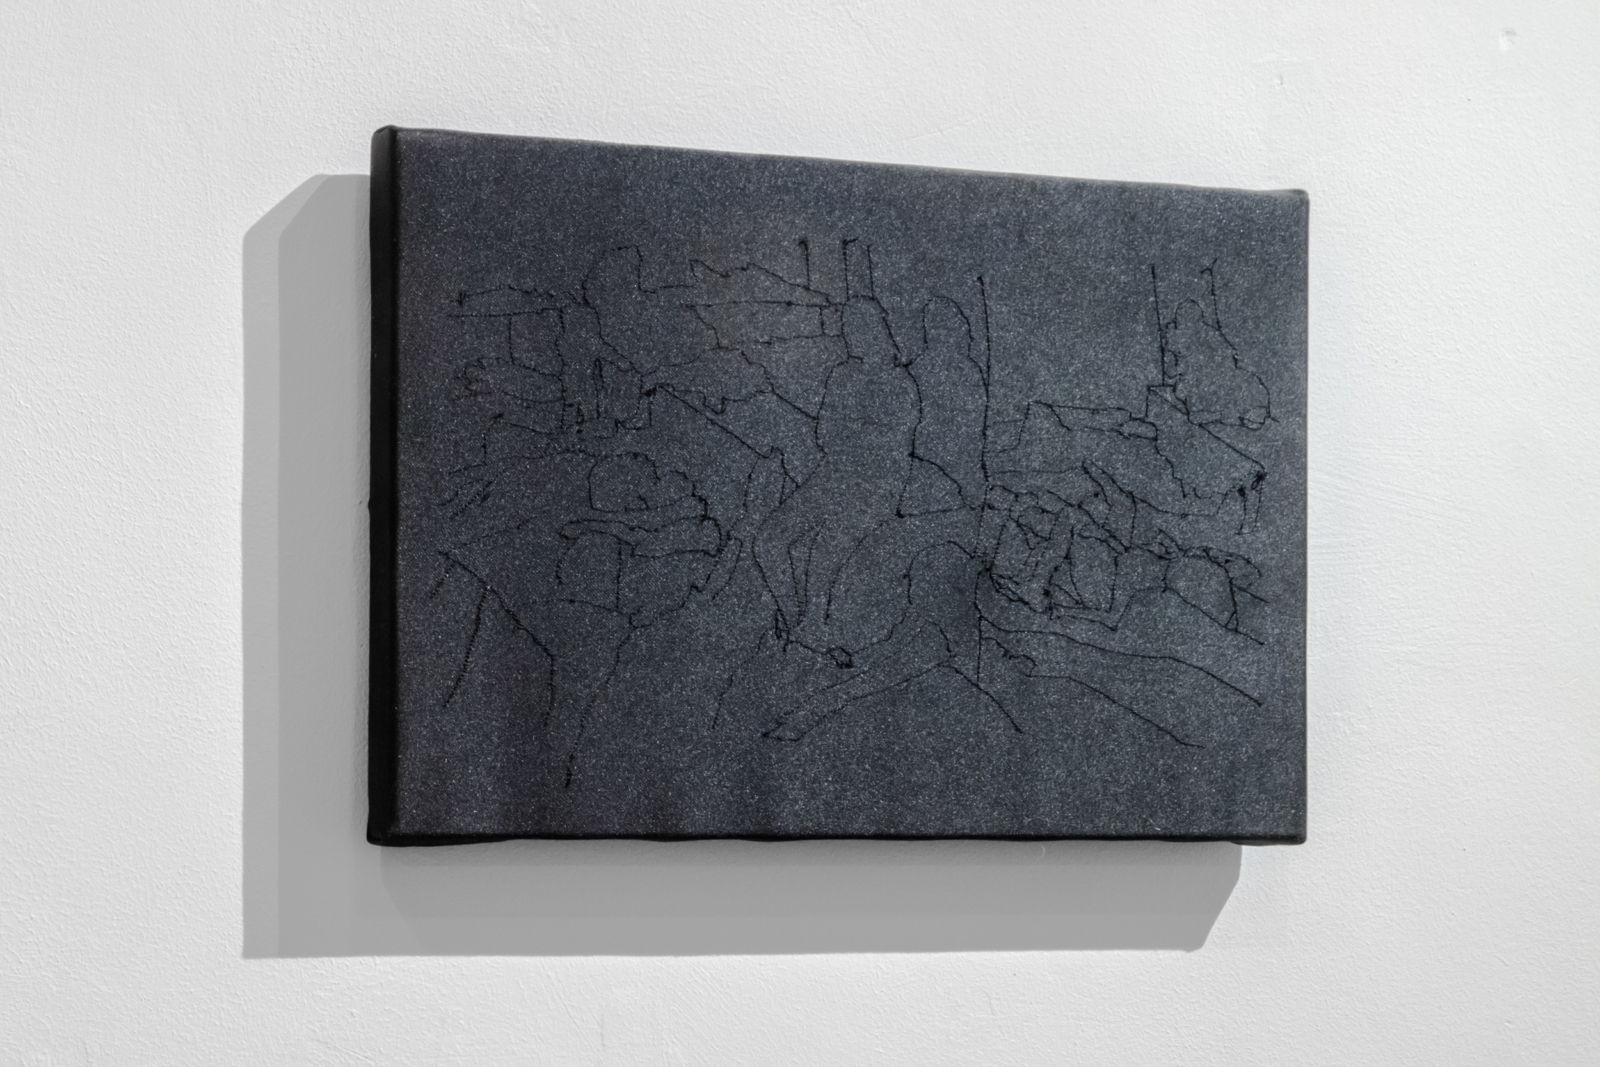 Nothing to See Here (series), 2019, sewn drawing in black thread on blackout fabric on pine stretchers, 22 x 33 cm.